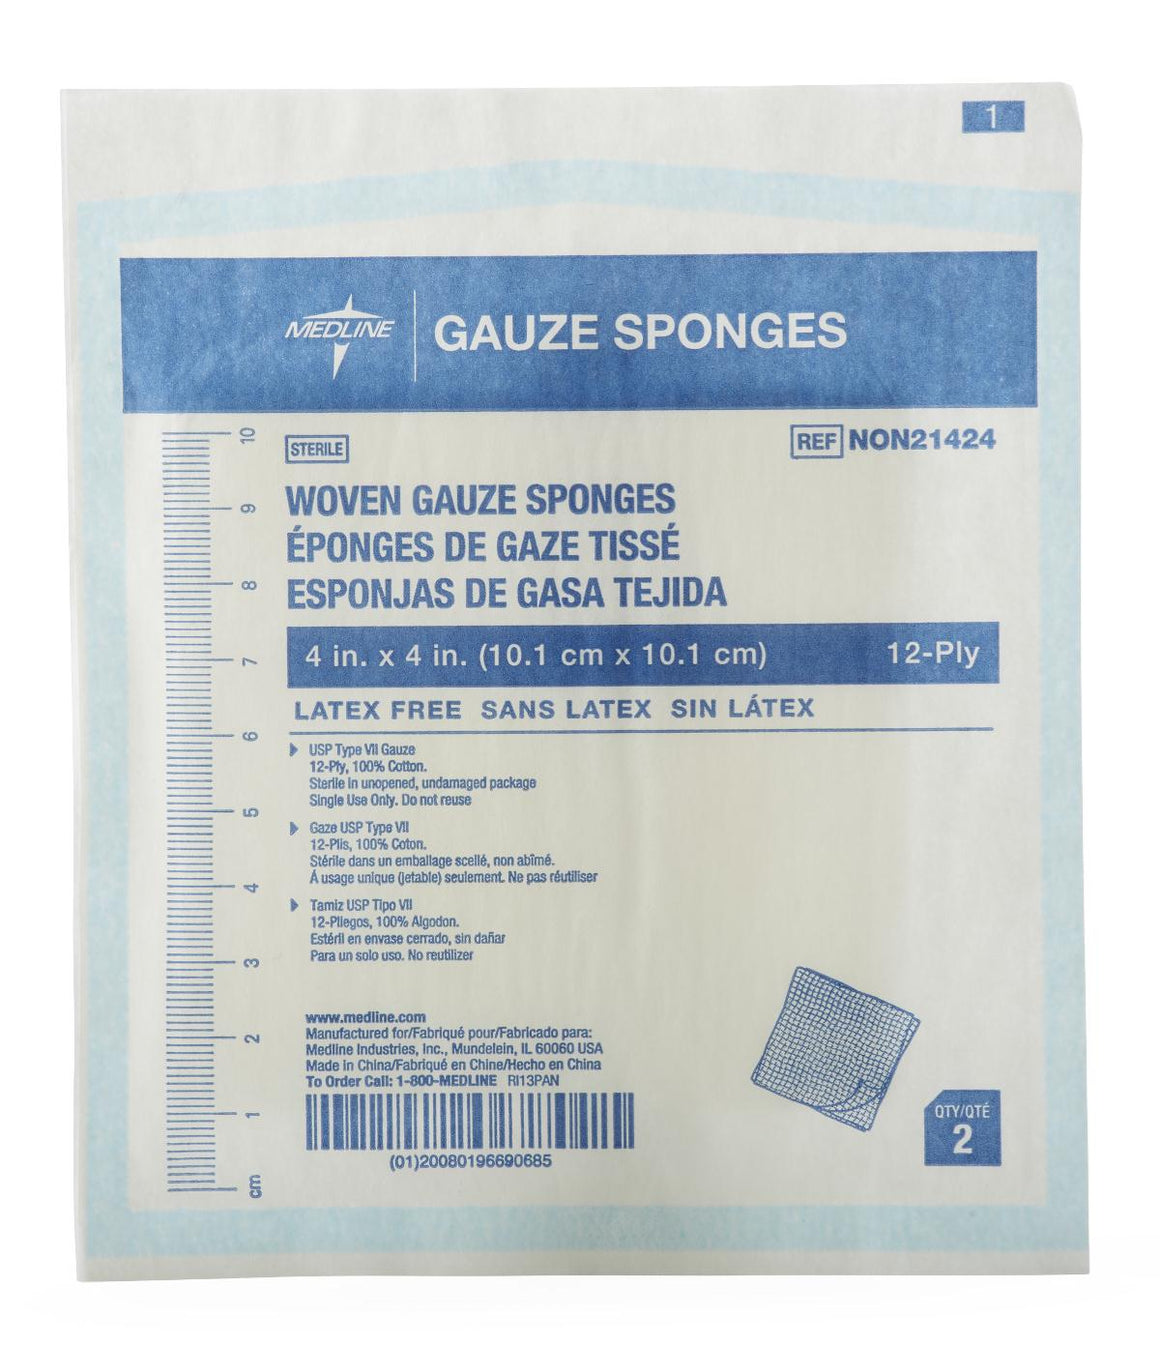 Woven Sterile Gauze Sponges, Case of 1200